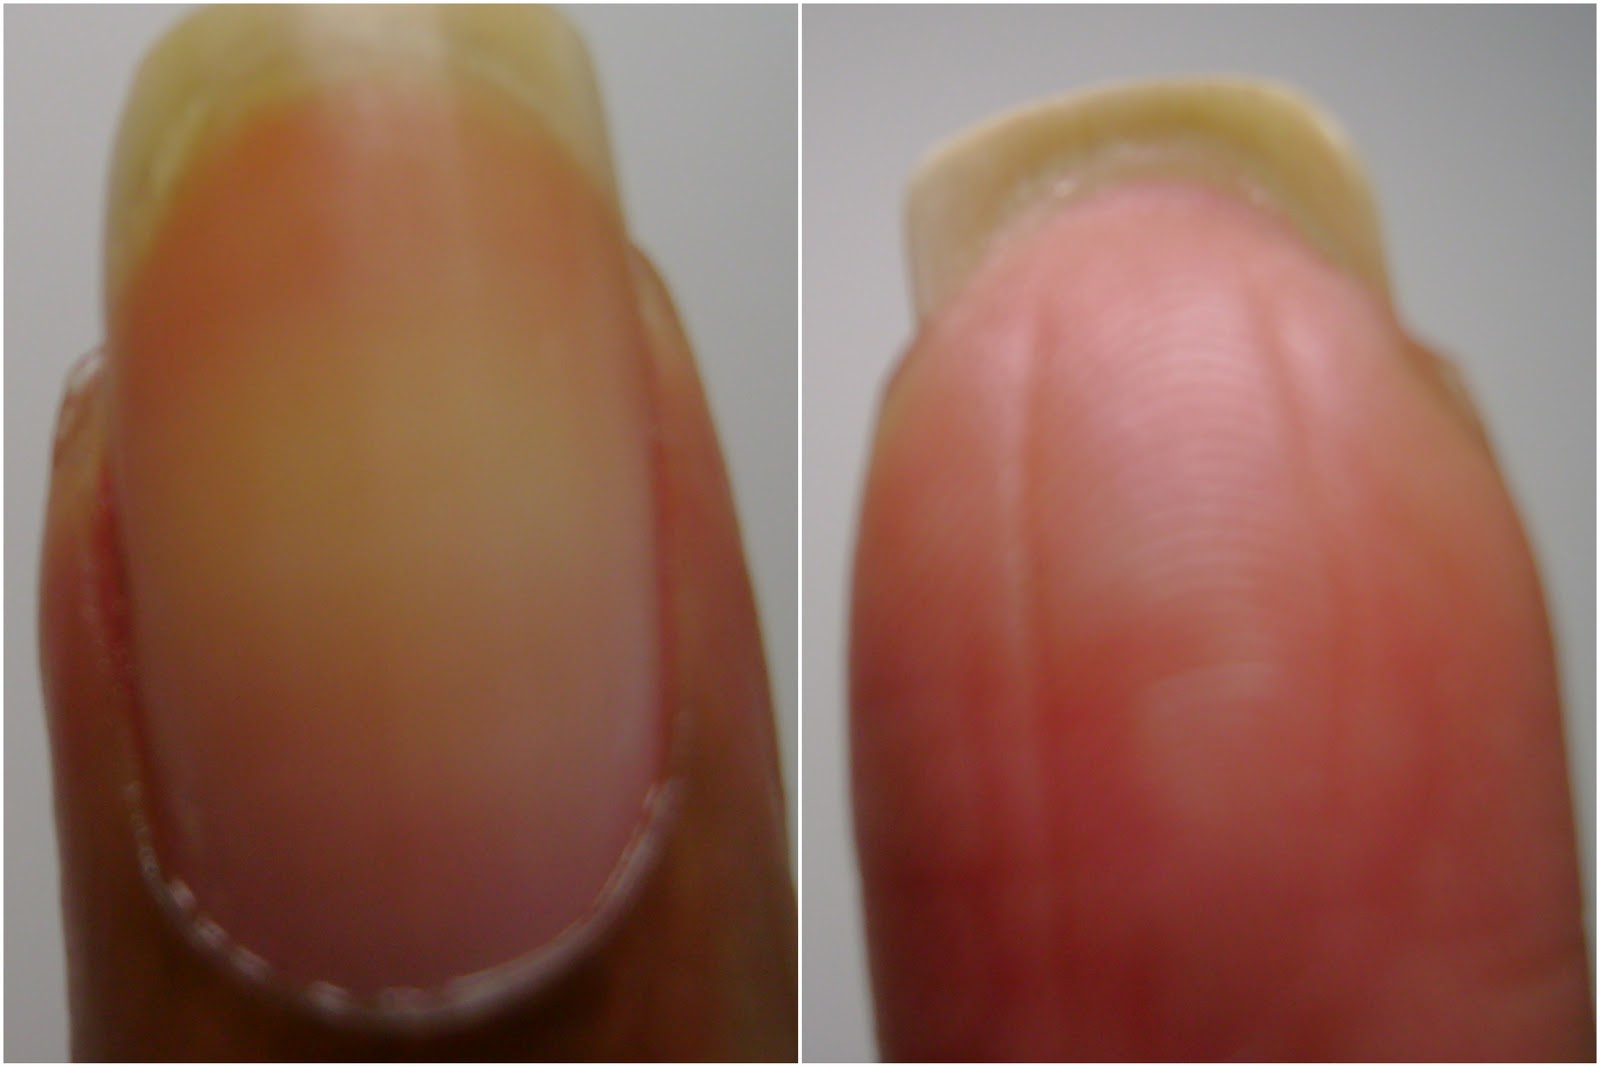 Craft Nail: Fingernail Anatomy, Nail Saving Tips